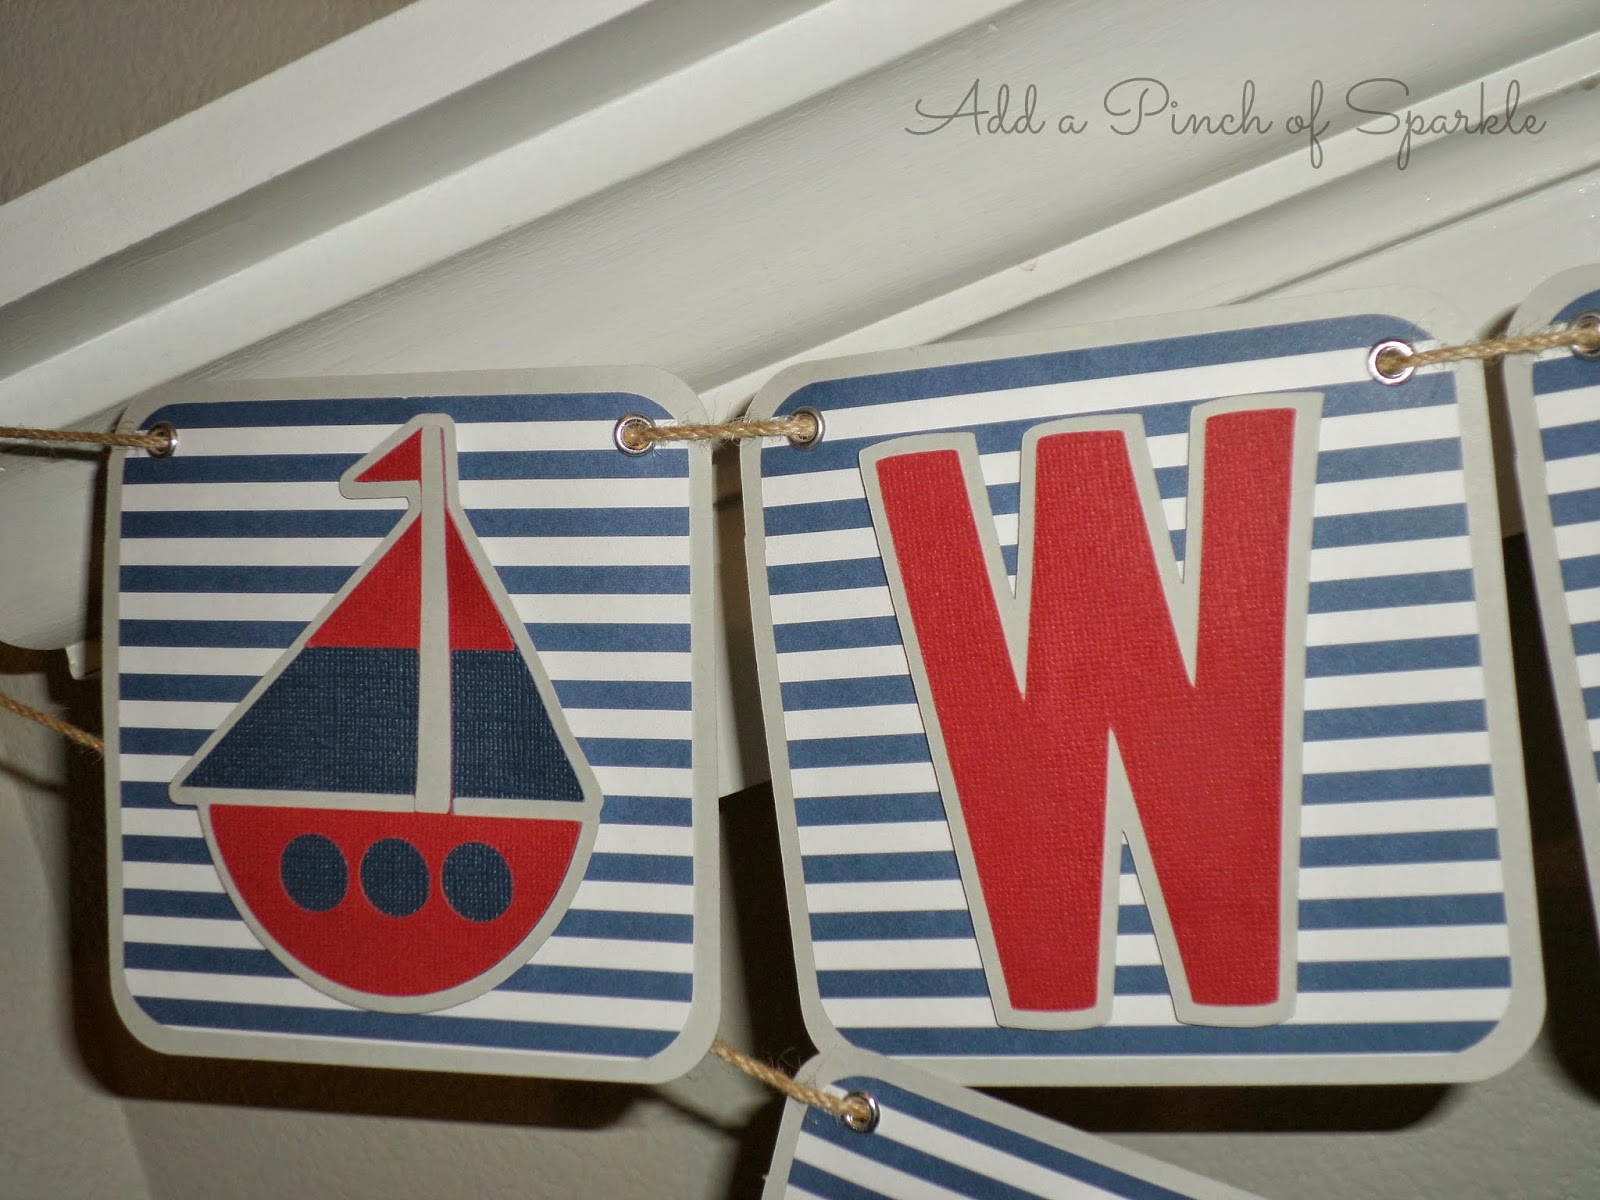 Add A Pinch Sparkle Nautical Themed Baby Shower Ideas